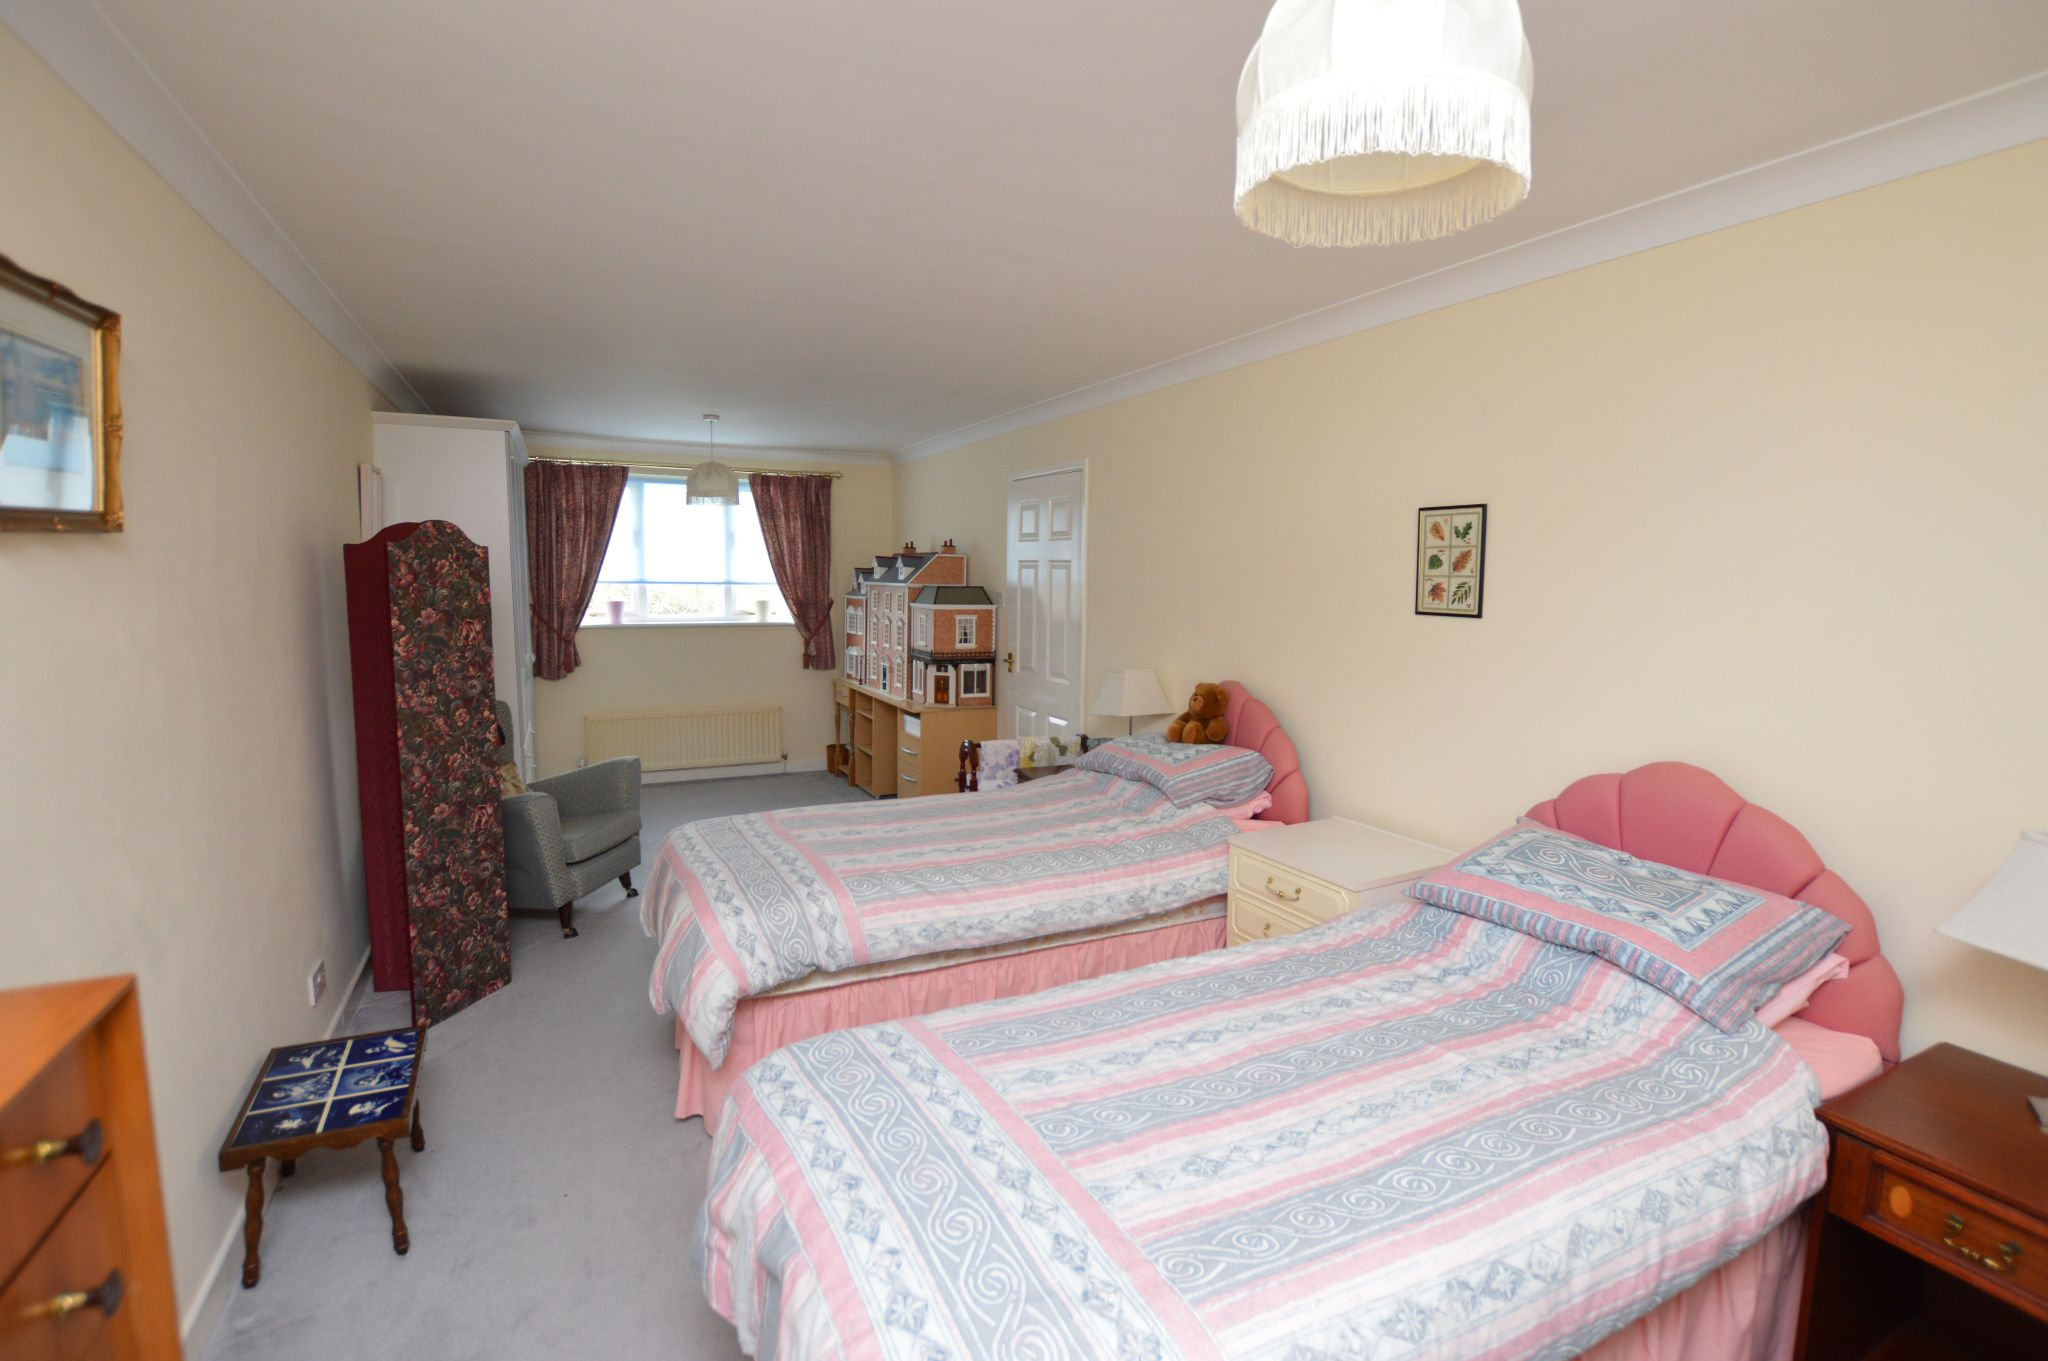 4 bedroom detached house For Sale in Abergele - Bedroom 2 View 3